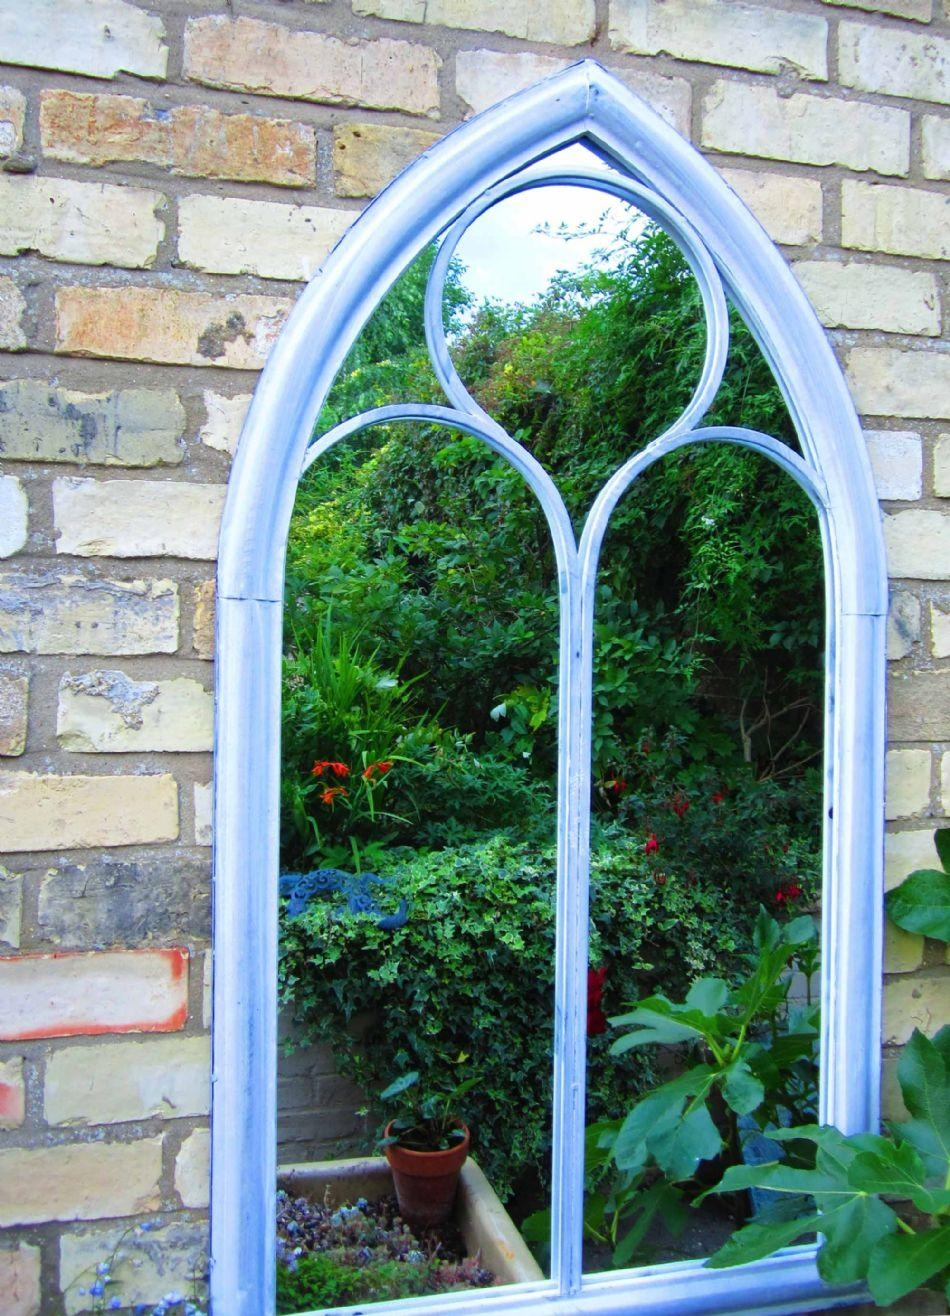 Gothic Arch Window Mirror 112Cm Tall Intended For Gothic Garden Mirrors (Image 13 of 20)